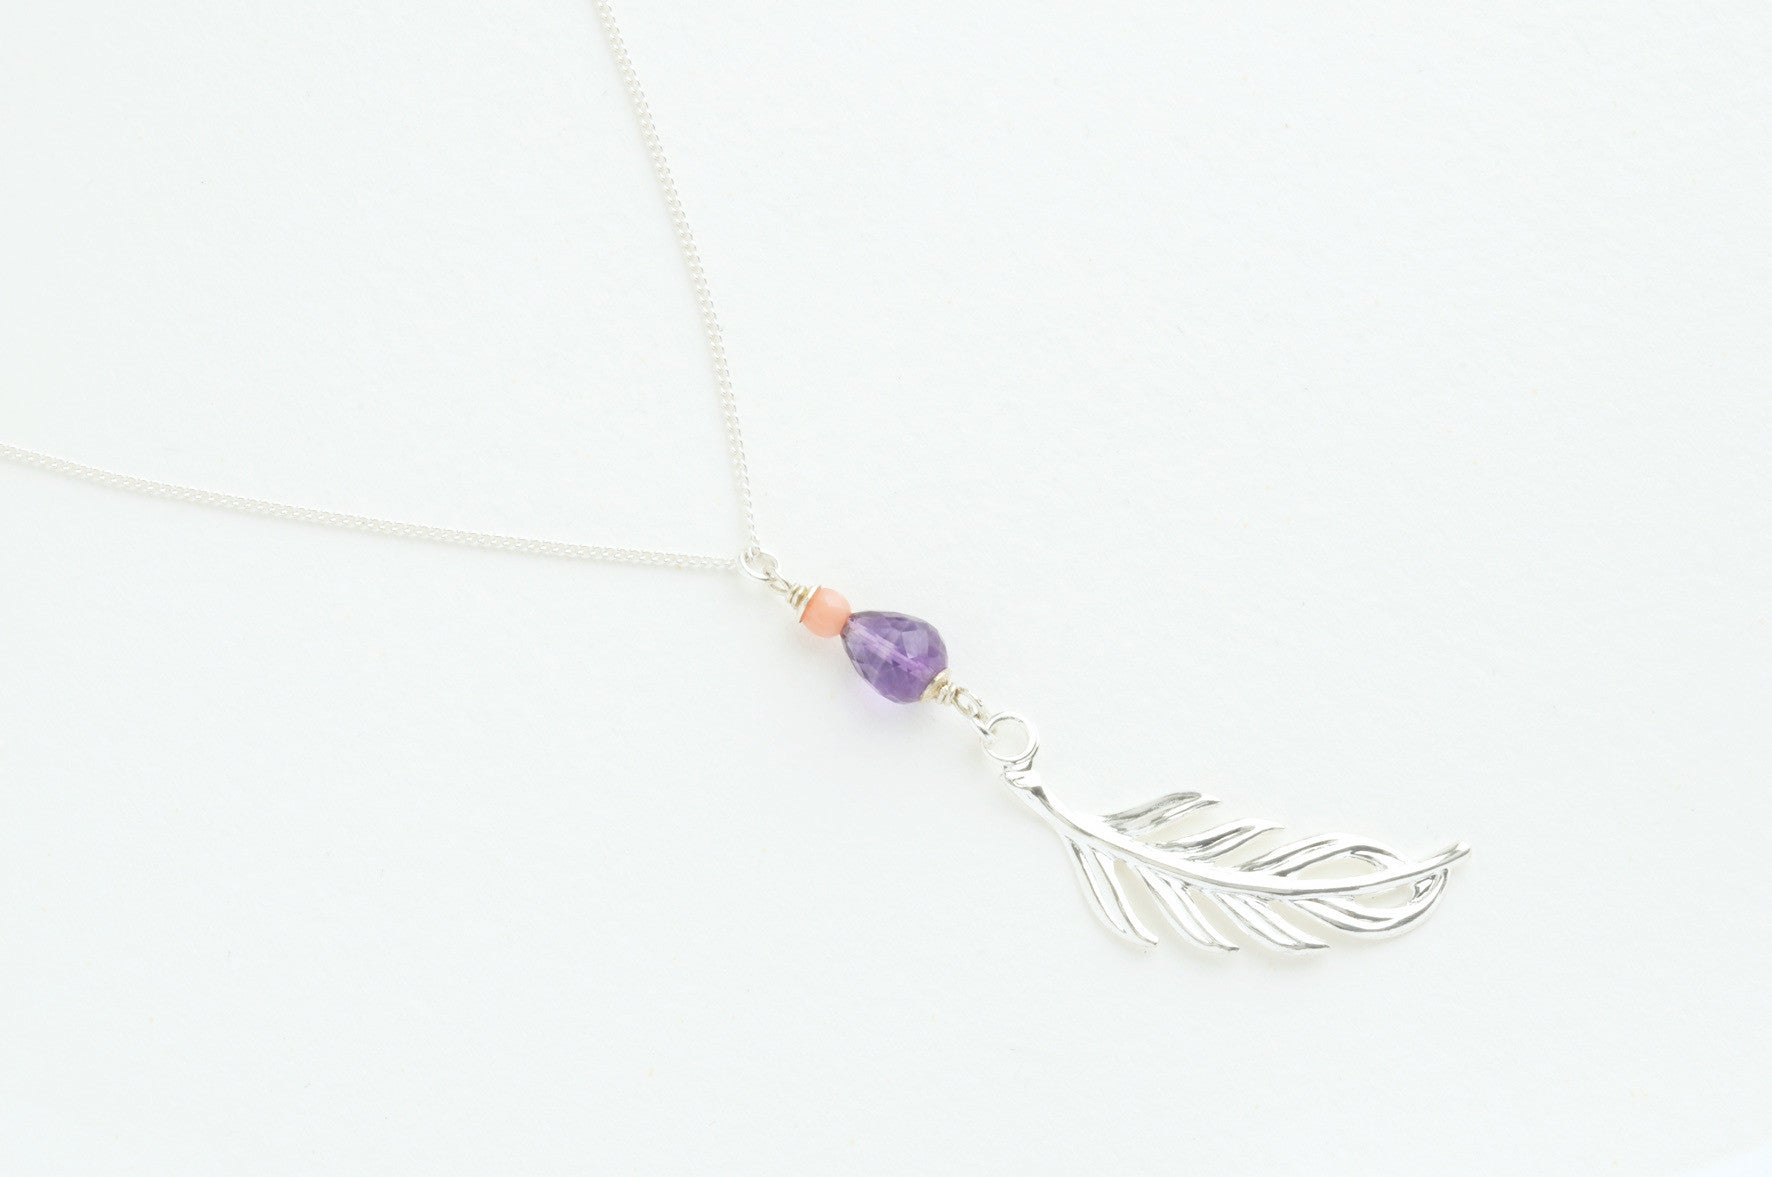 ....Kette FEATHERLEAF small versilbert..Necklace FEATHER LEAF small silver plated....